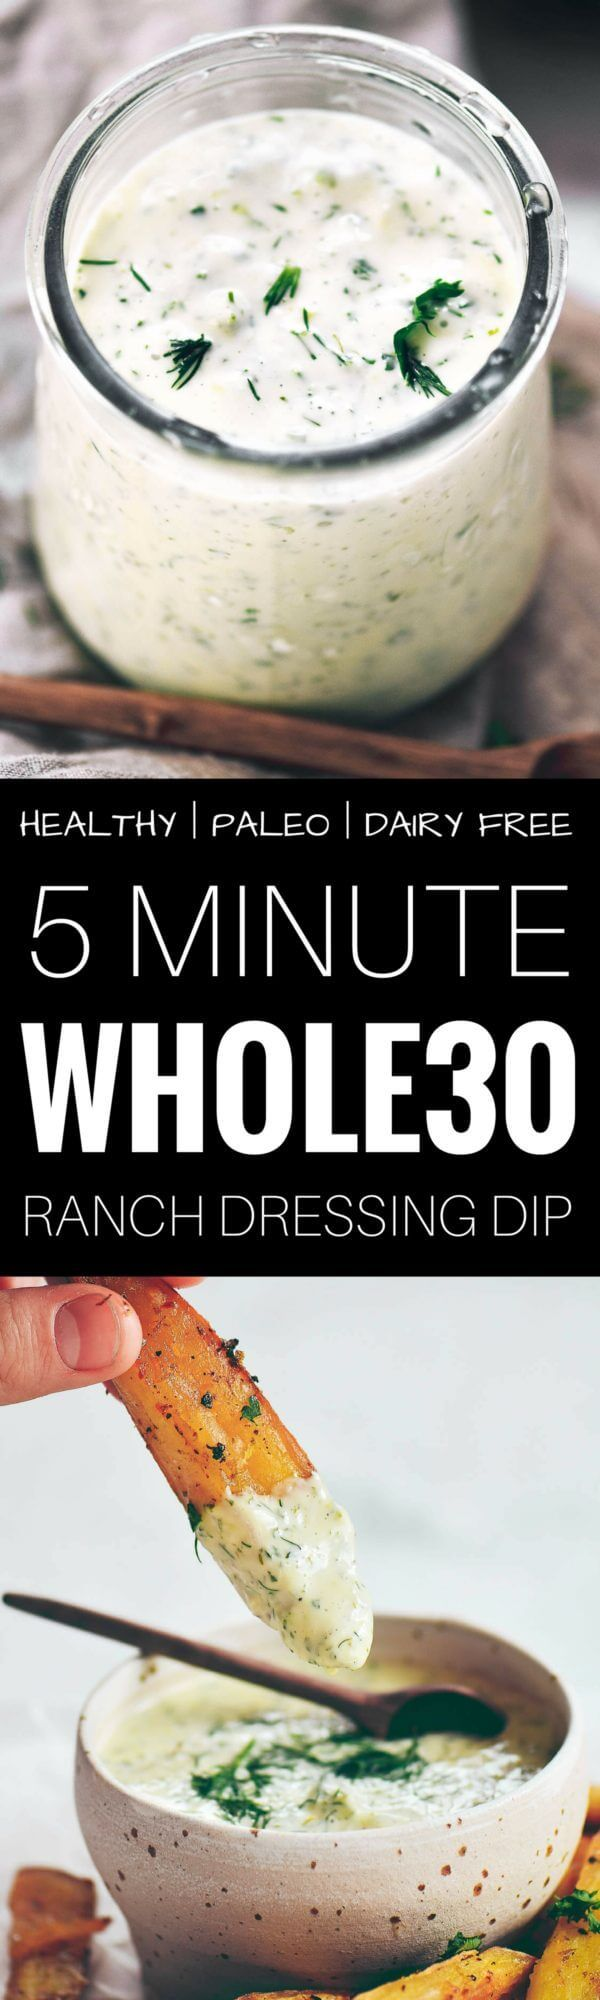 Creamy whole30 ranch dressing dip